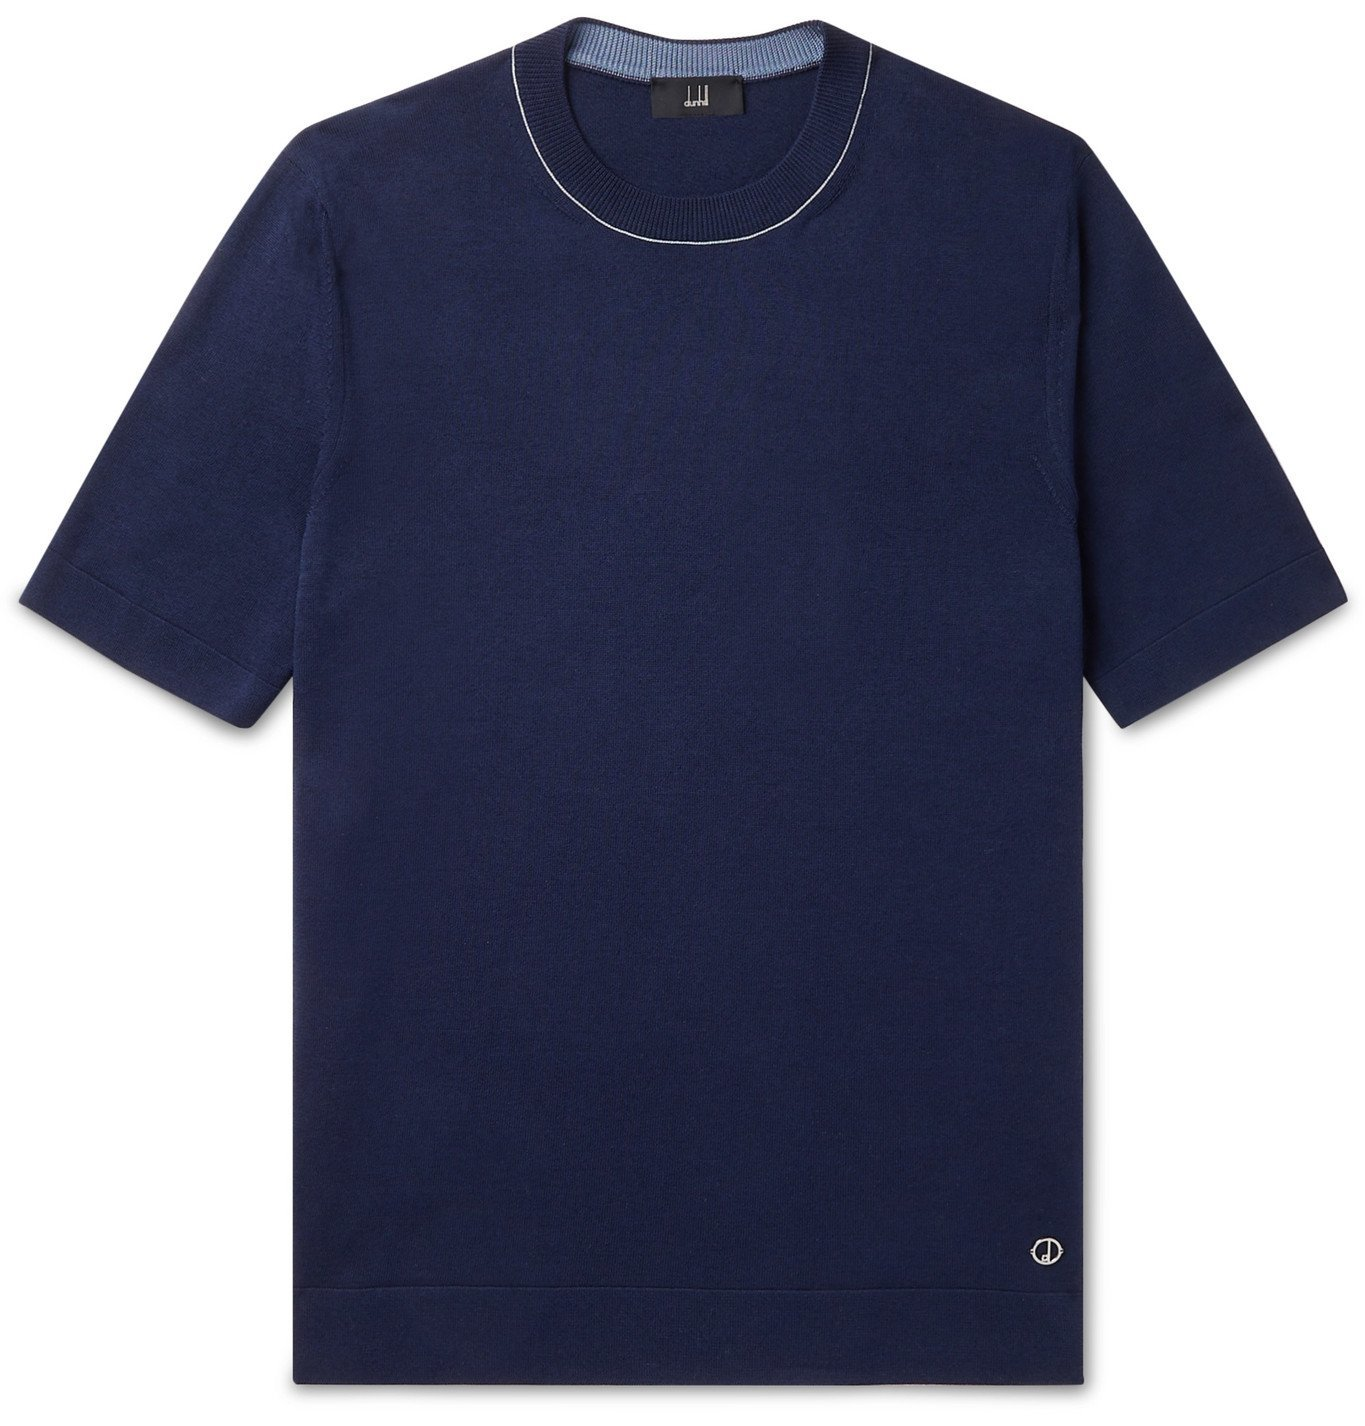 DUNHILL - Contrast-Tipped Silk and Cotton-Blend T-Shirt - Blue